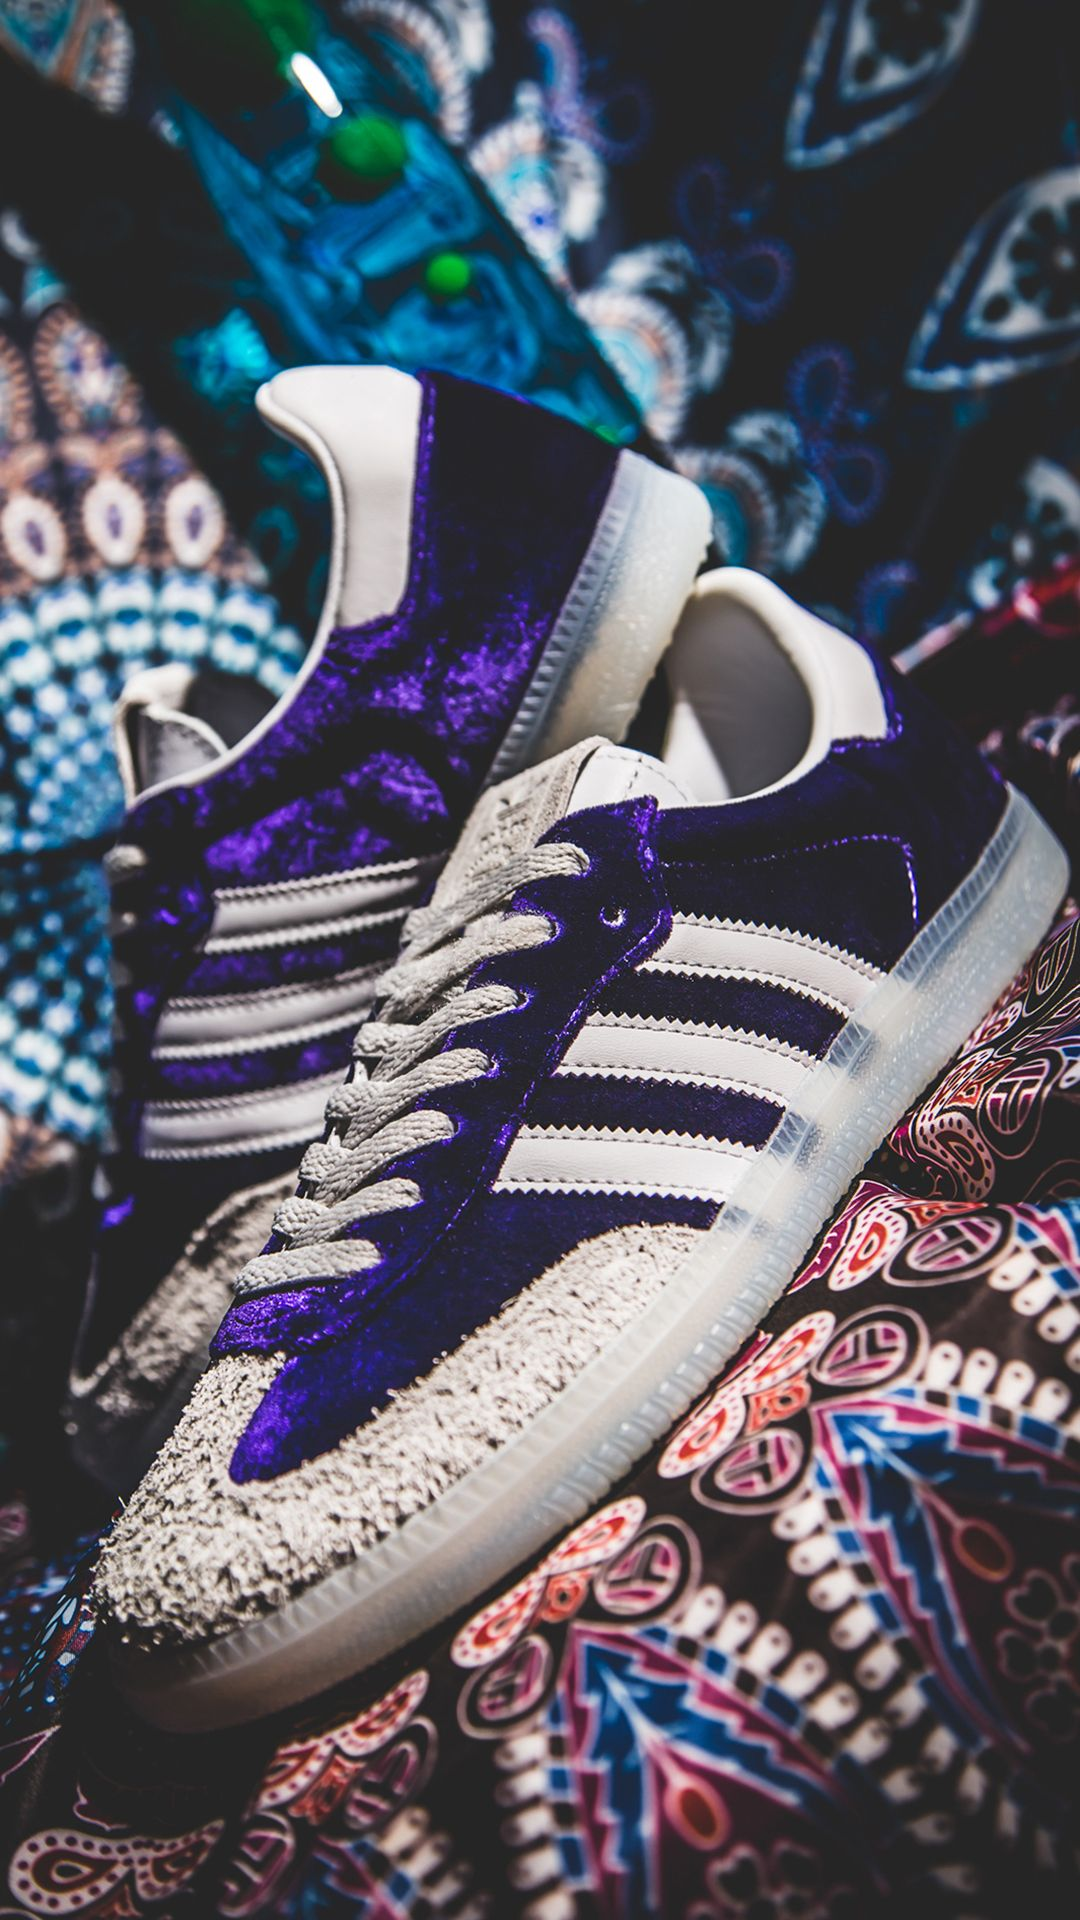 adidas Samba OG Four Twenty DB3011 | Sneakers Men in 2019